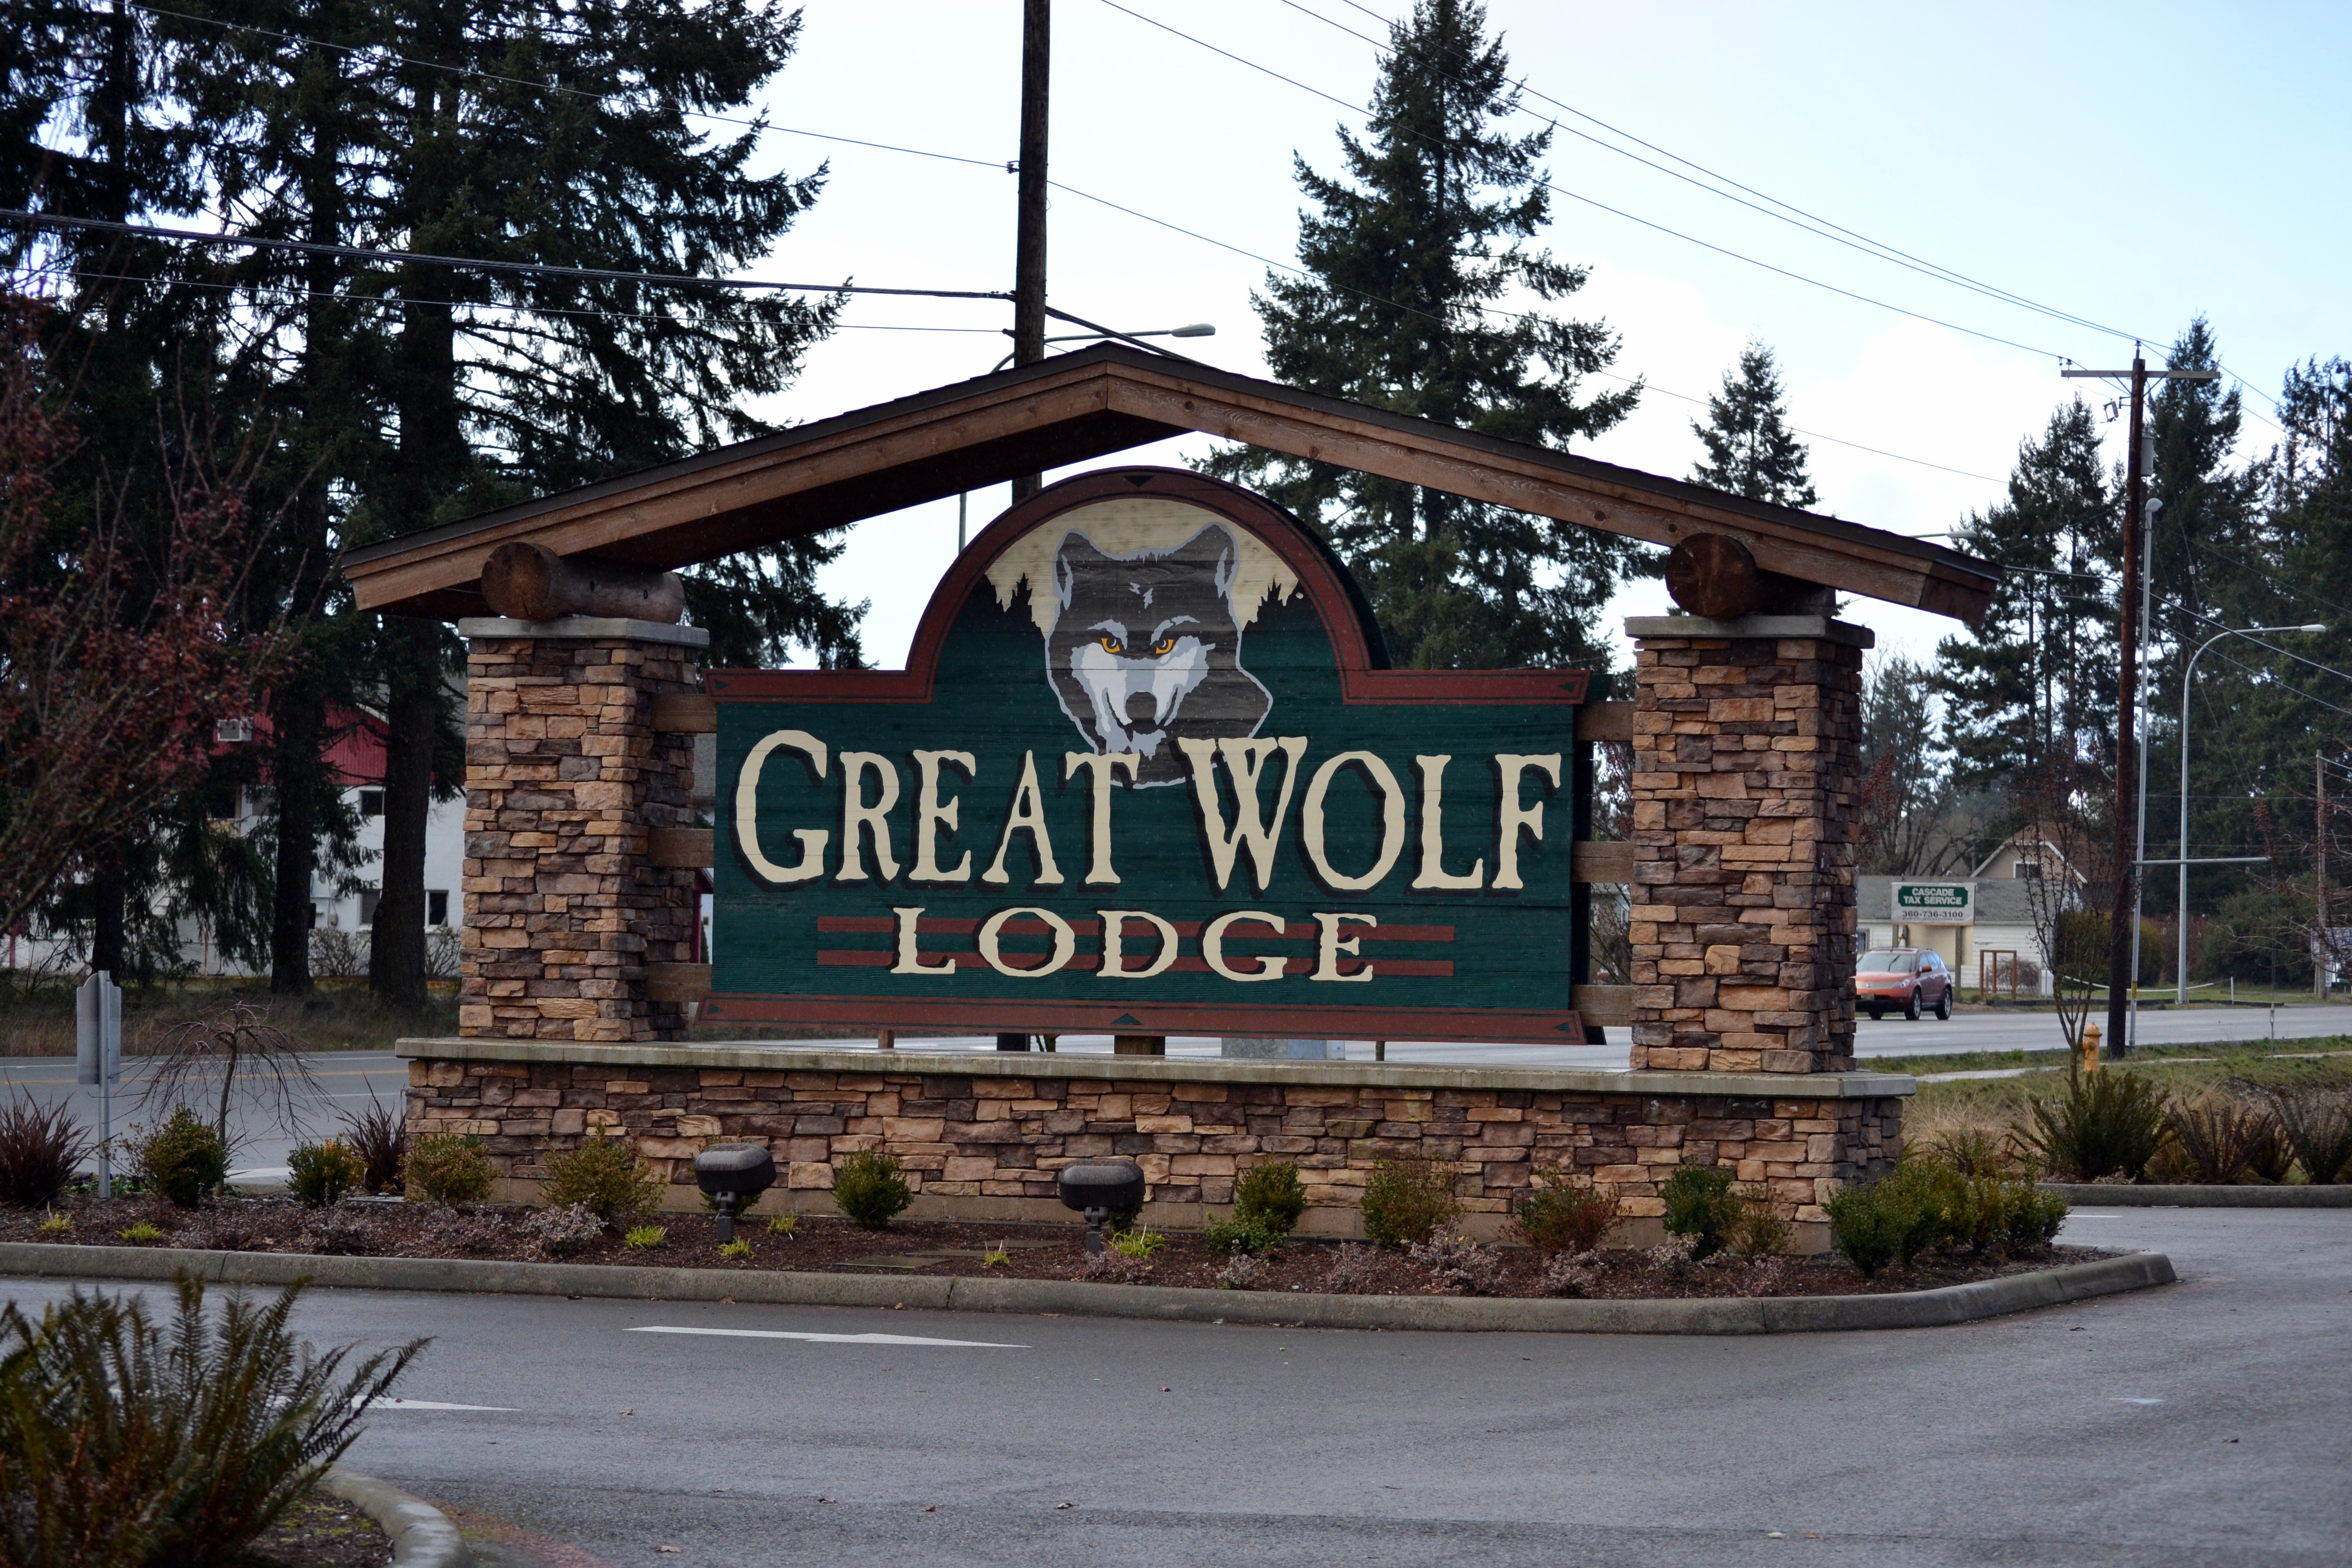 There are many discount codes available for great wolf lodge but few